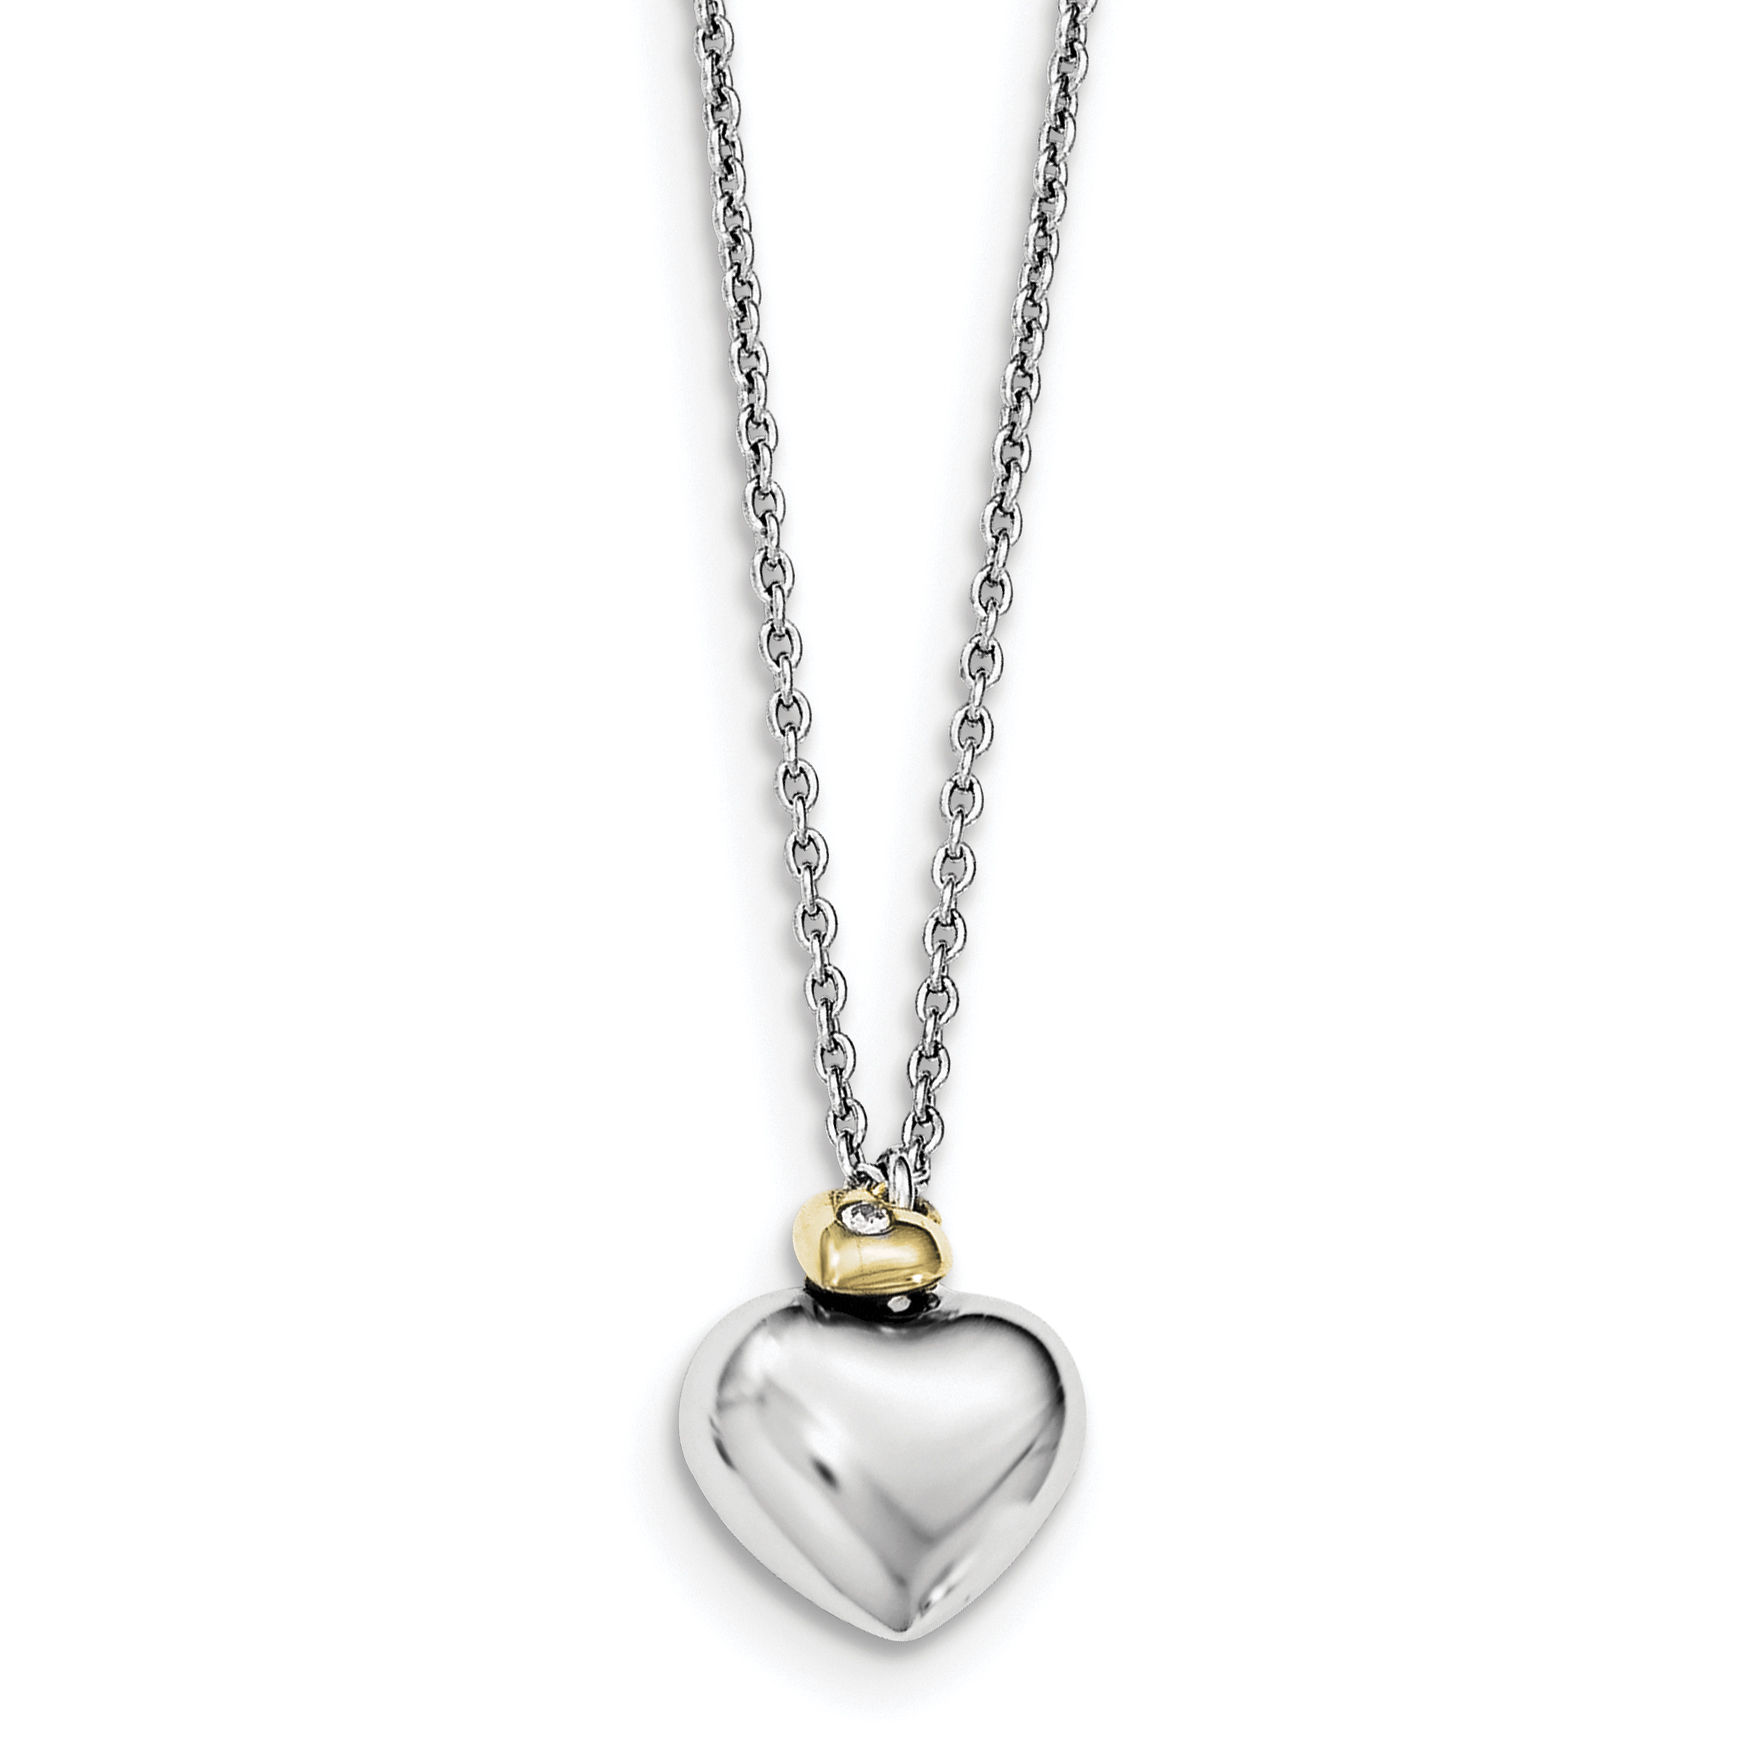 14K Two Tone Gold Heart Mom /& Daughter Charm Pendant with 1.2mm Singapore Chain Necklace